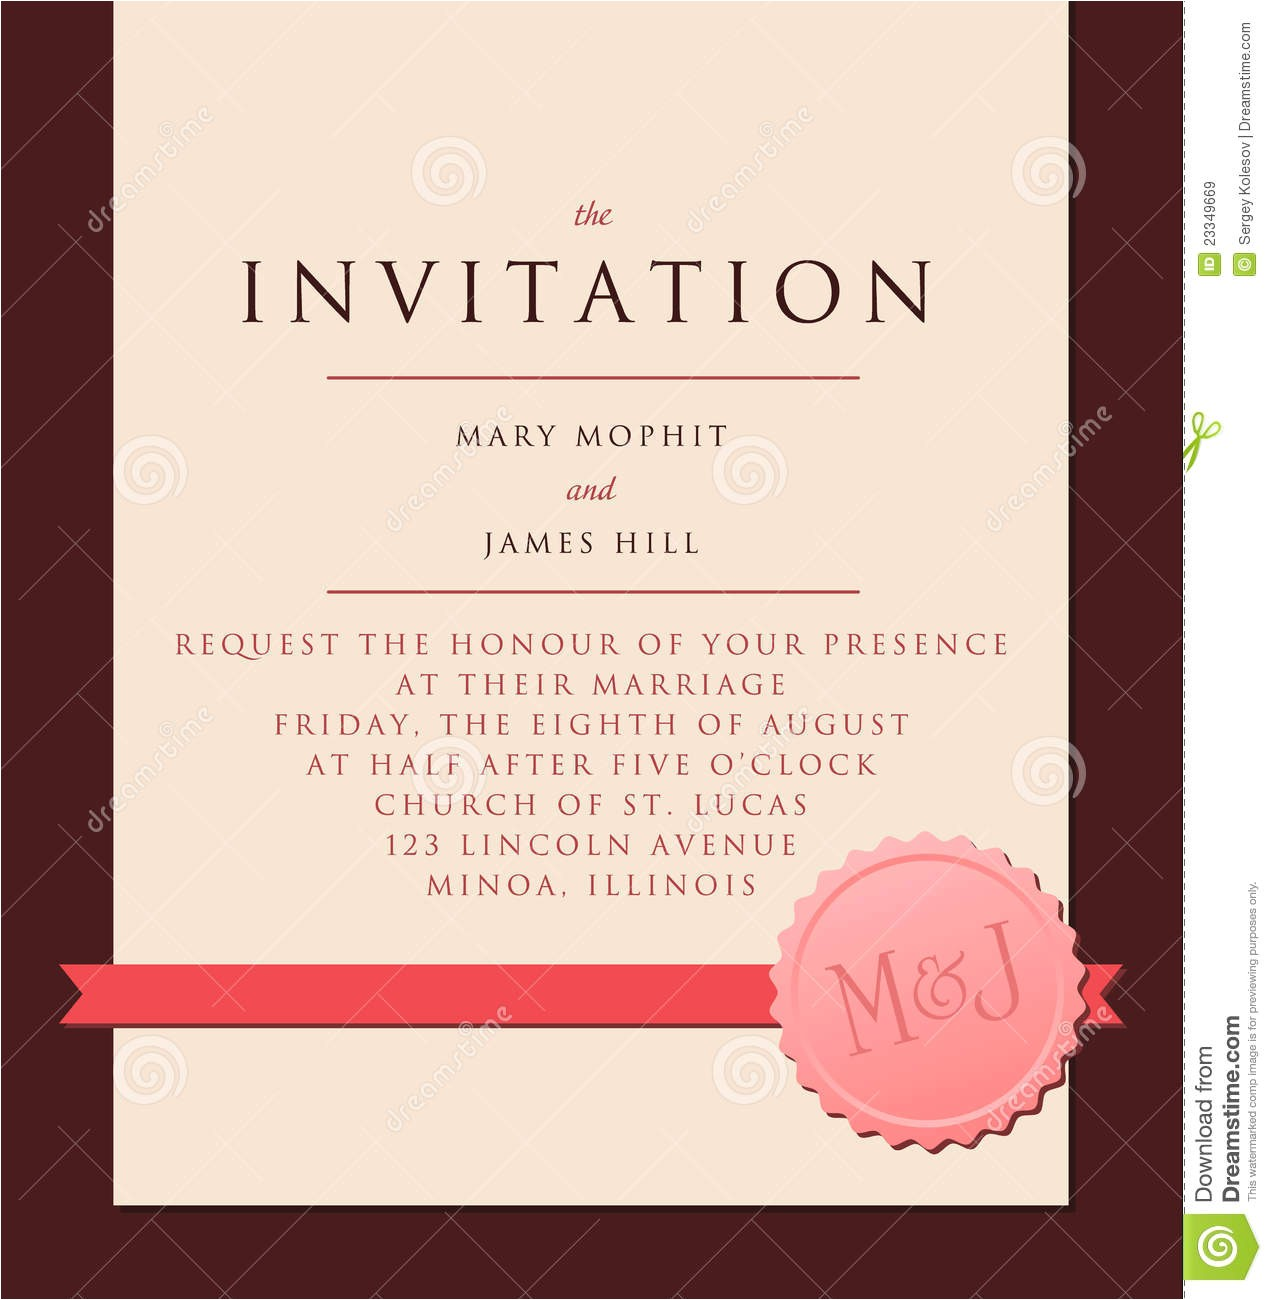 royalty free stock images elegant invitation to wedding image23349669